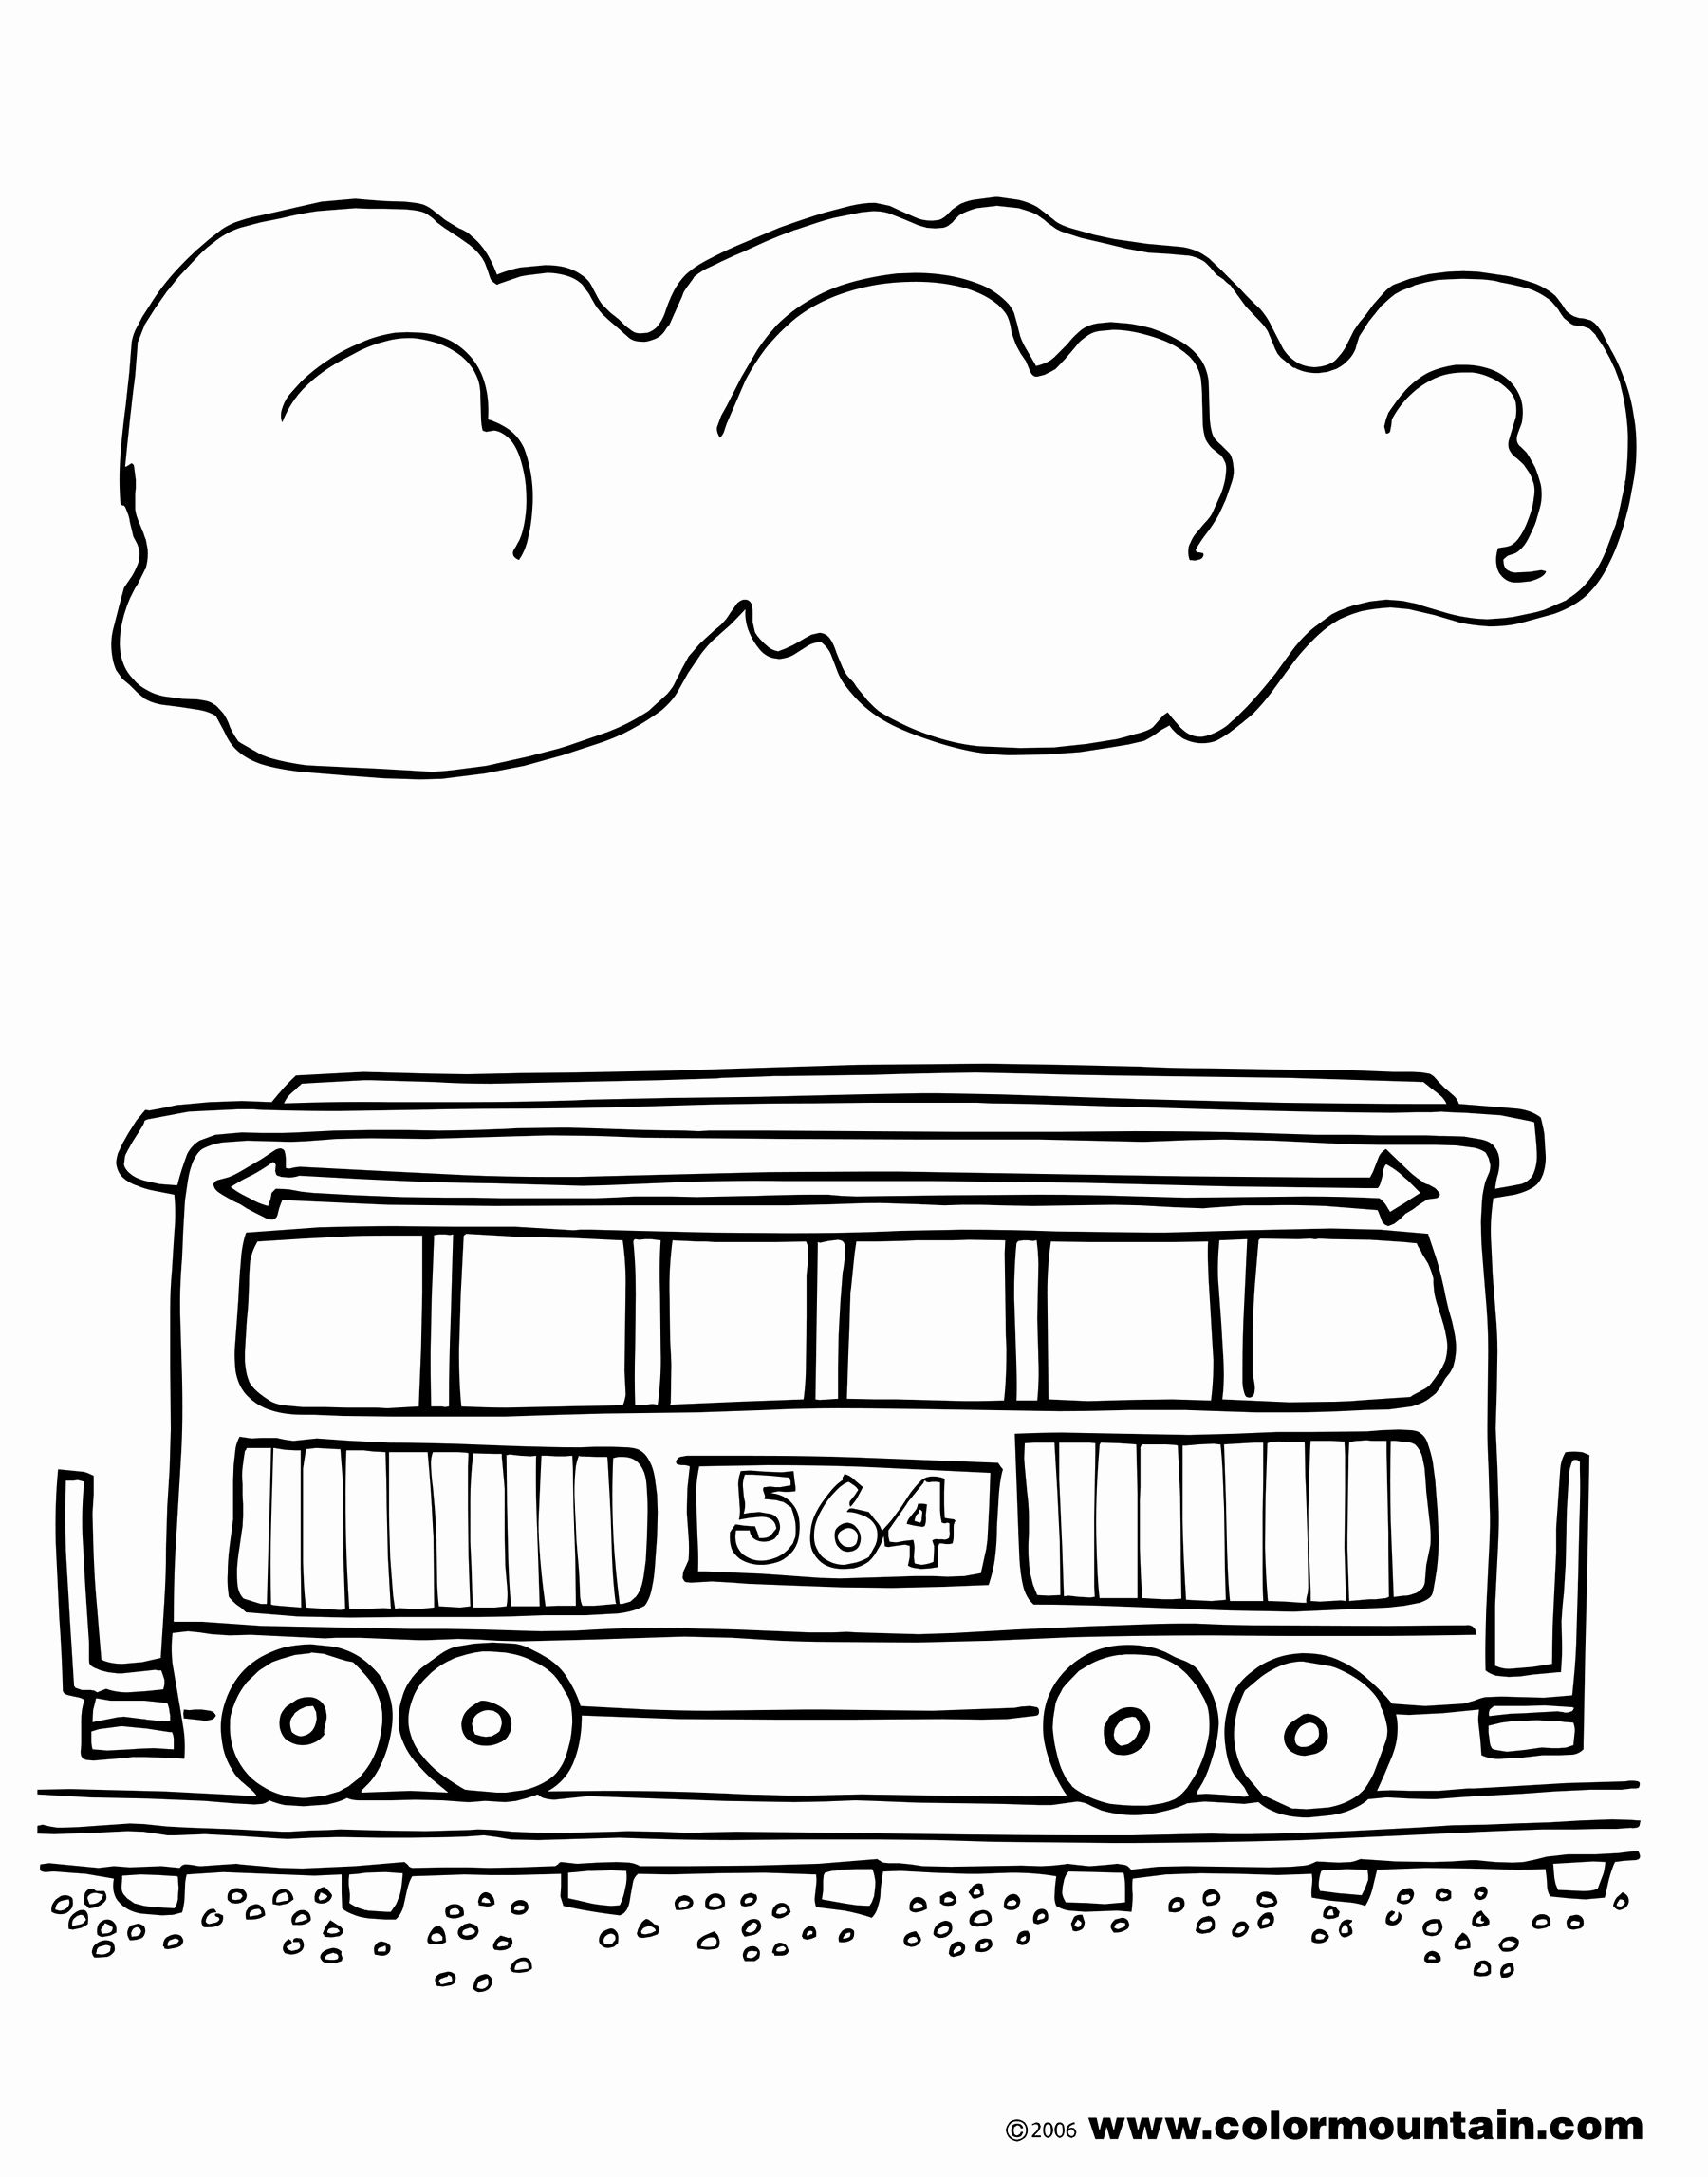 Lego Race Car Coloring Pages Taken